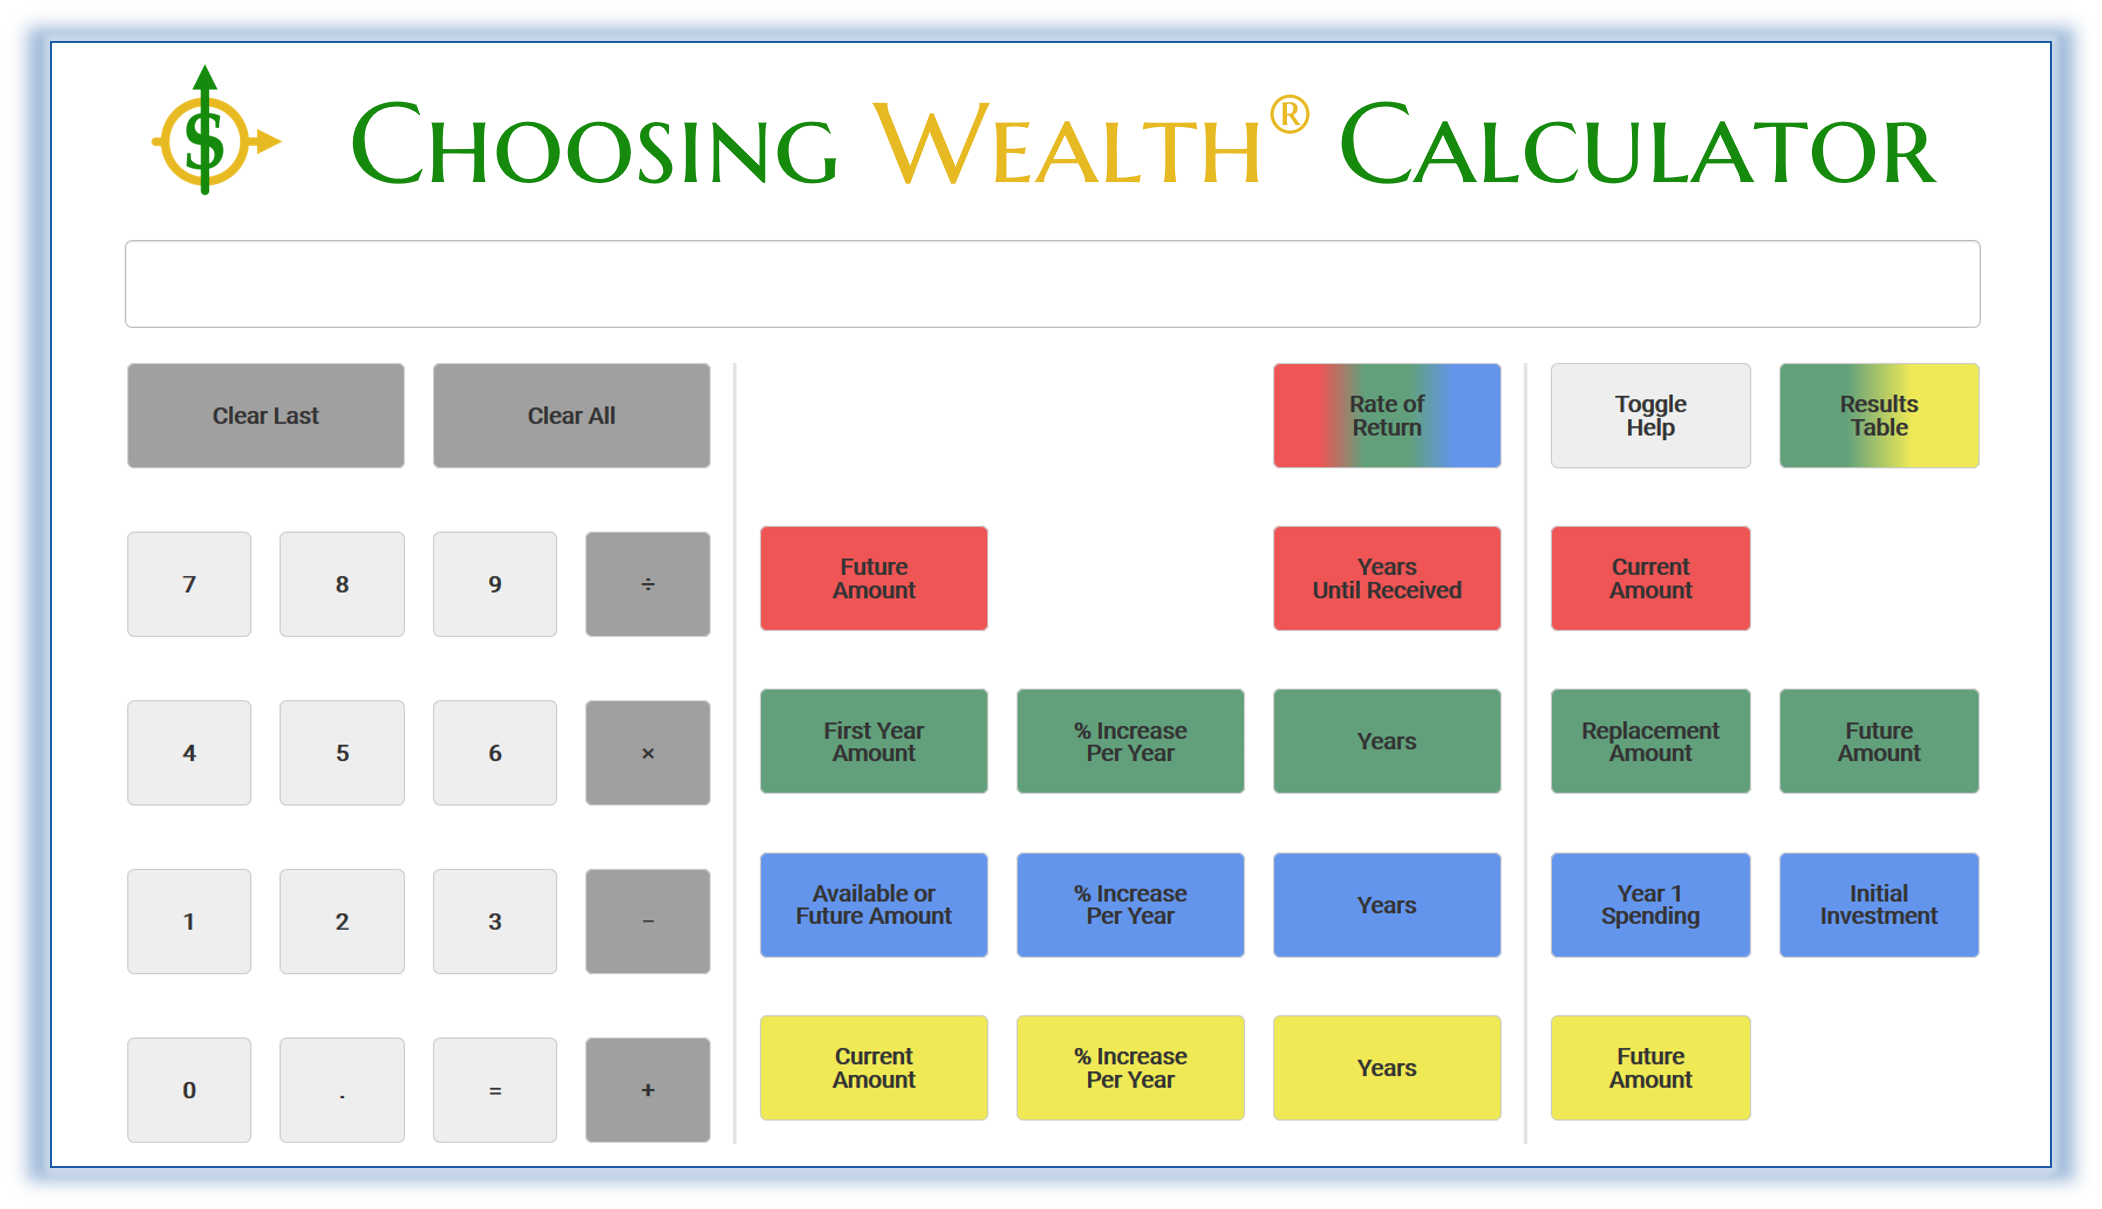 Image of the Choosing Wealth™ Calculator screen simulation